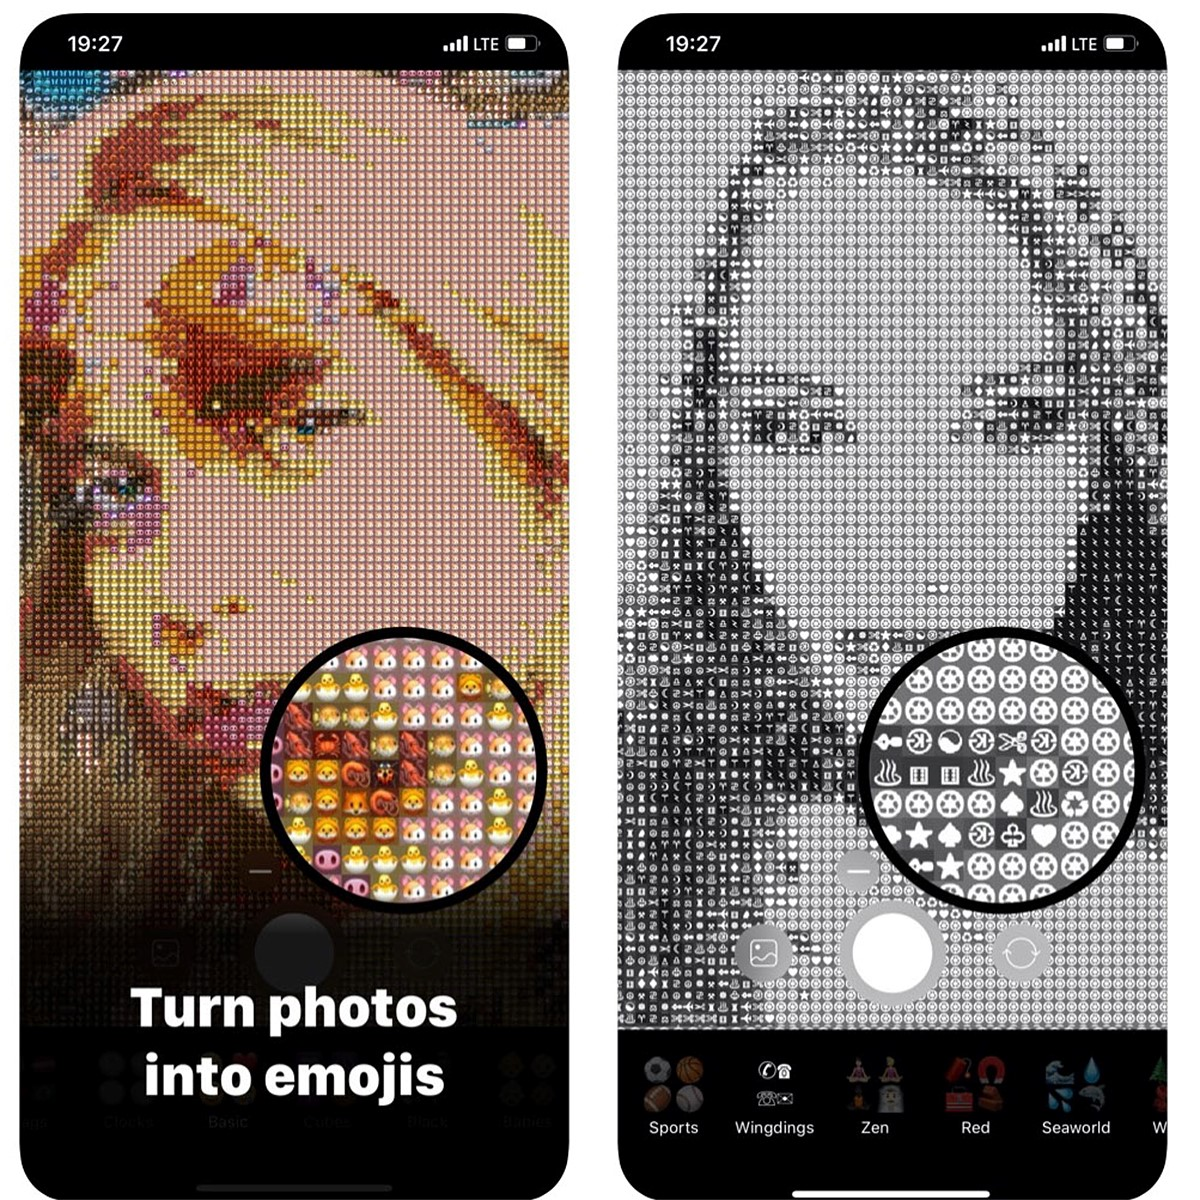 Emojivision Uses Computational Photography To Turn Your Photos Into Emojis Digital Photography Review To upload the yay emoji to your discord server follow these simple steps. turn your photos into emojis